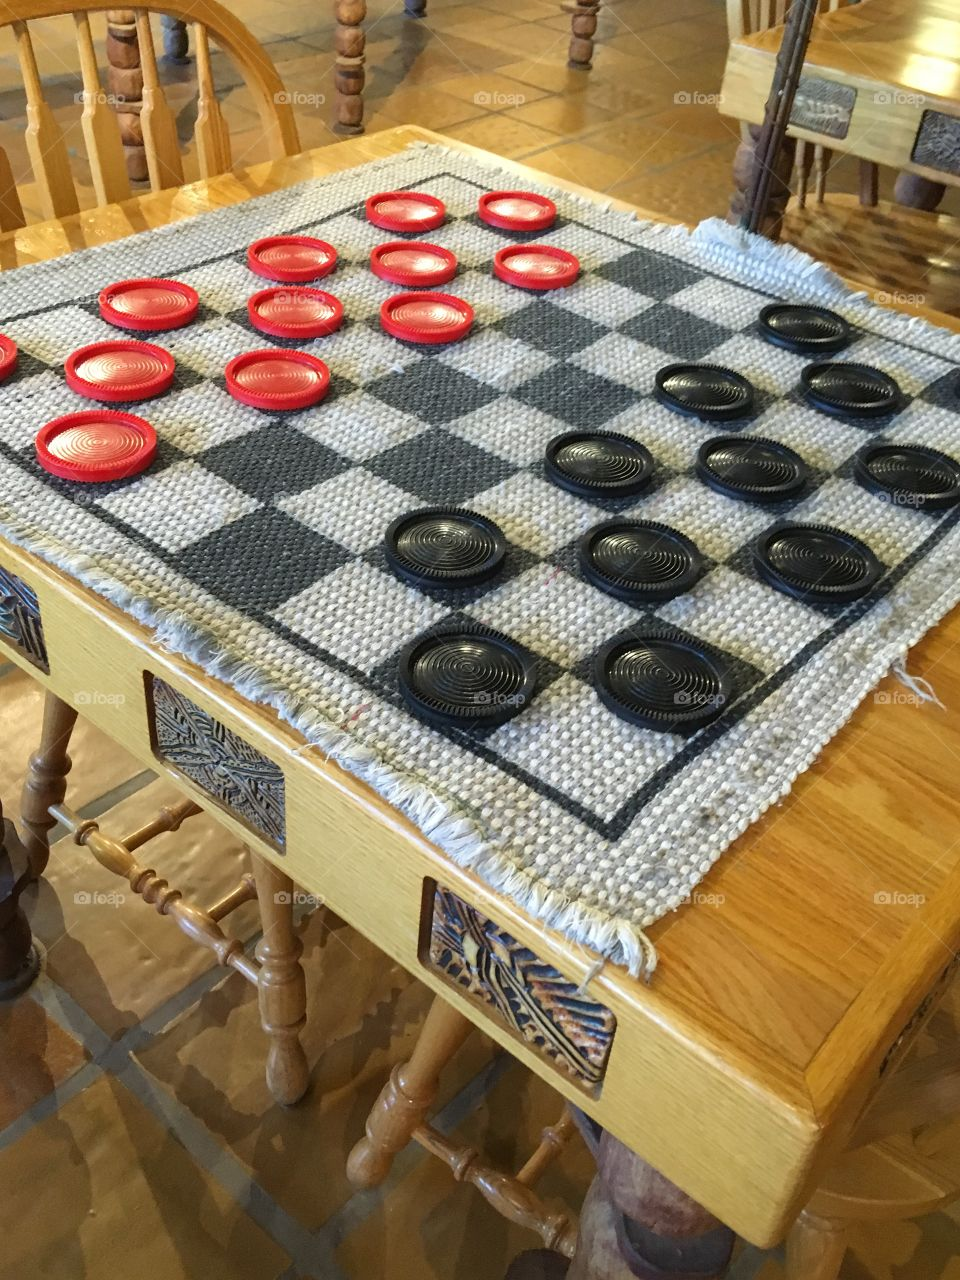 Maybe you'd be up for a game of checkers with these big pieces. Can't cheat very easily.